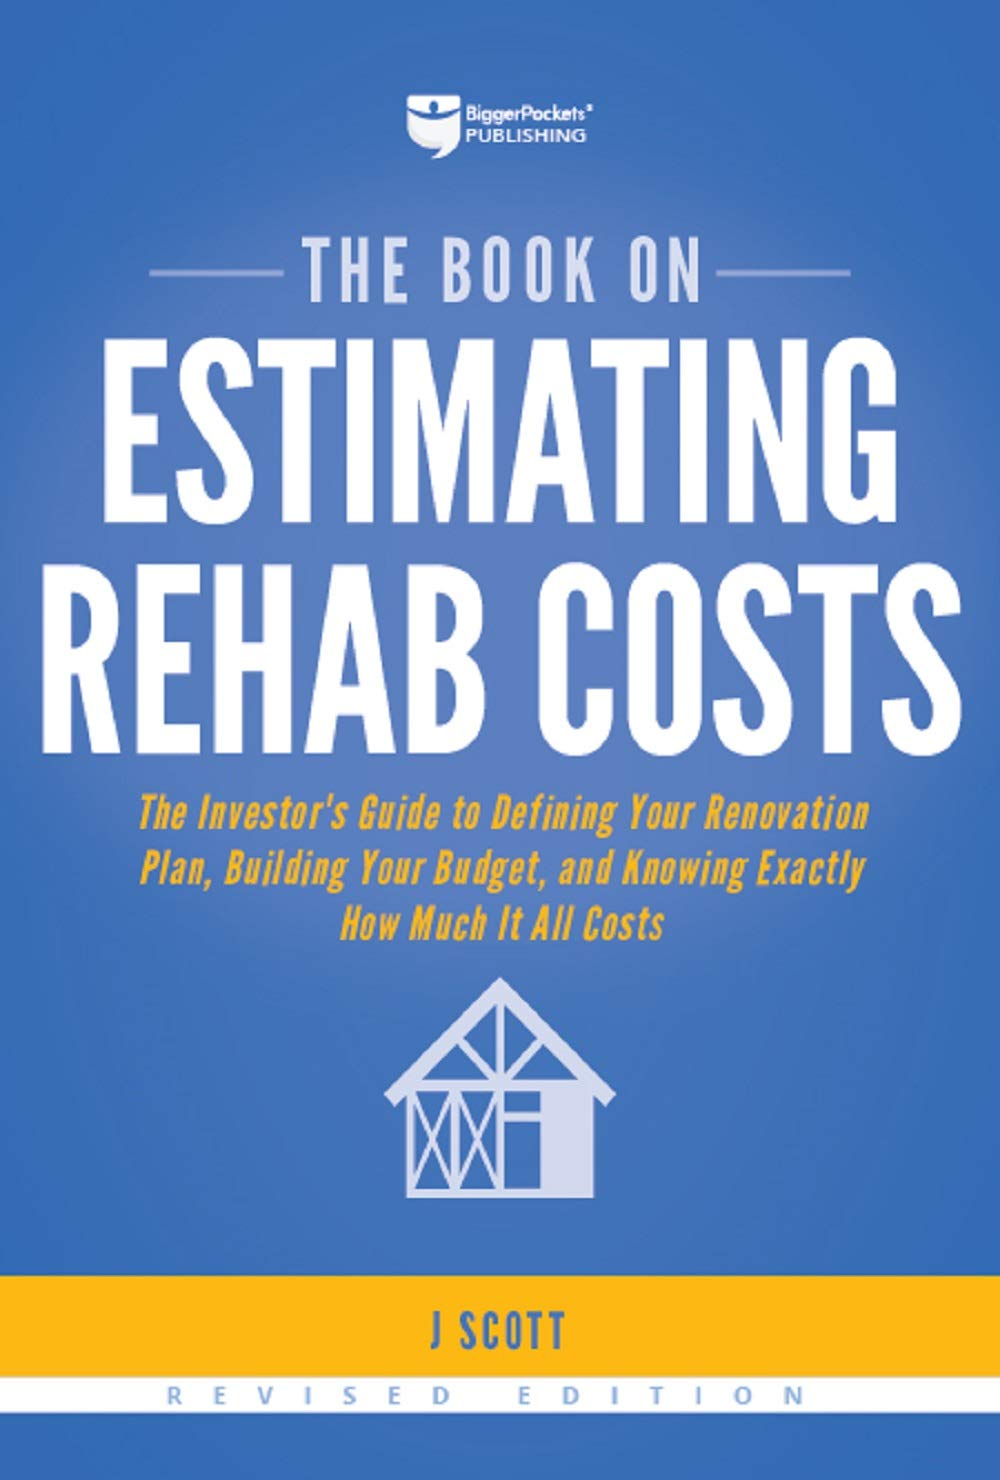 The Book on Estimating Rehab Costs: The Investor's Guide to Defining Your Renovation Plan, Building Your Budget, and Knowing Exactly How Much It All Costs by BiggerPockets